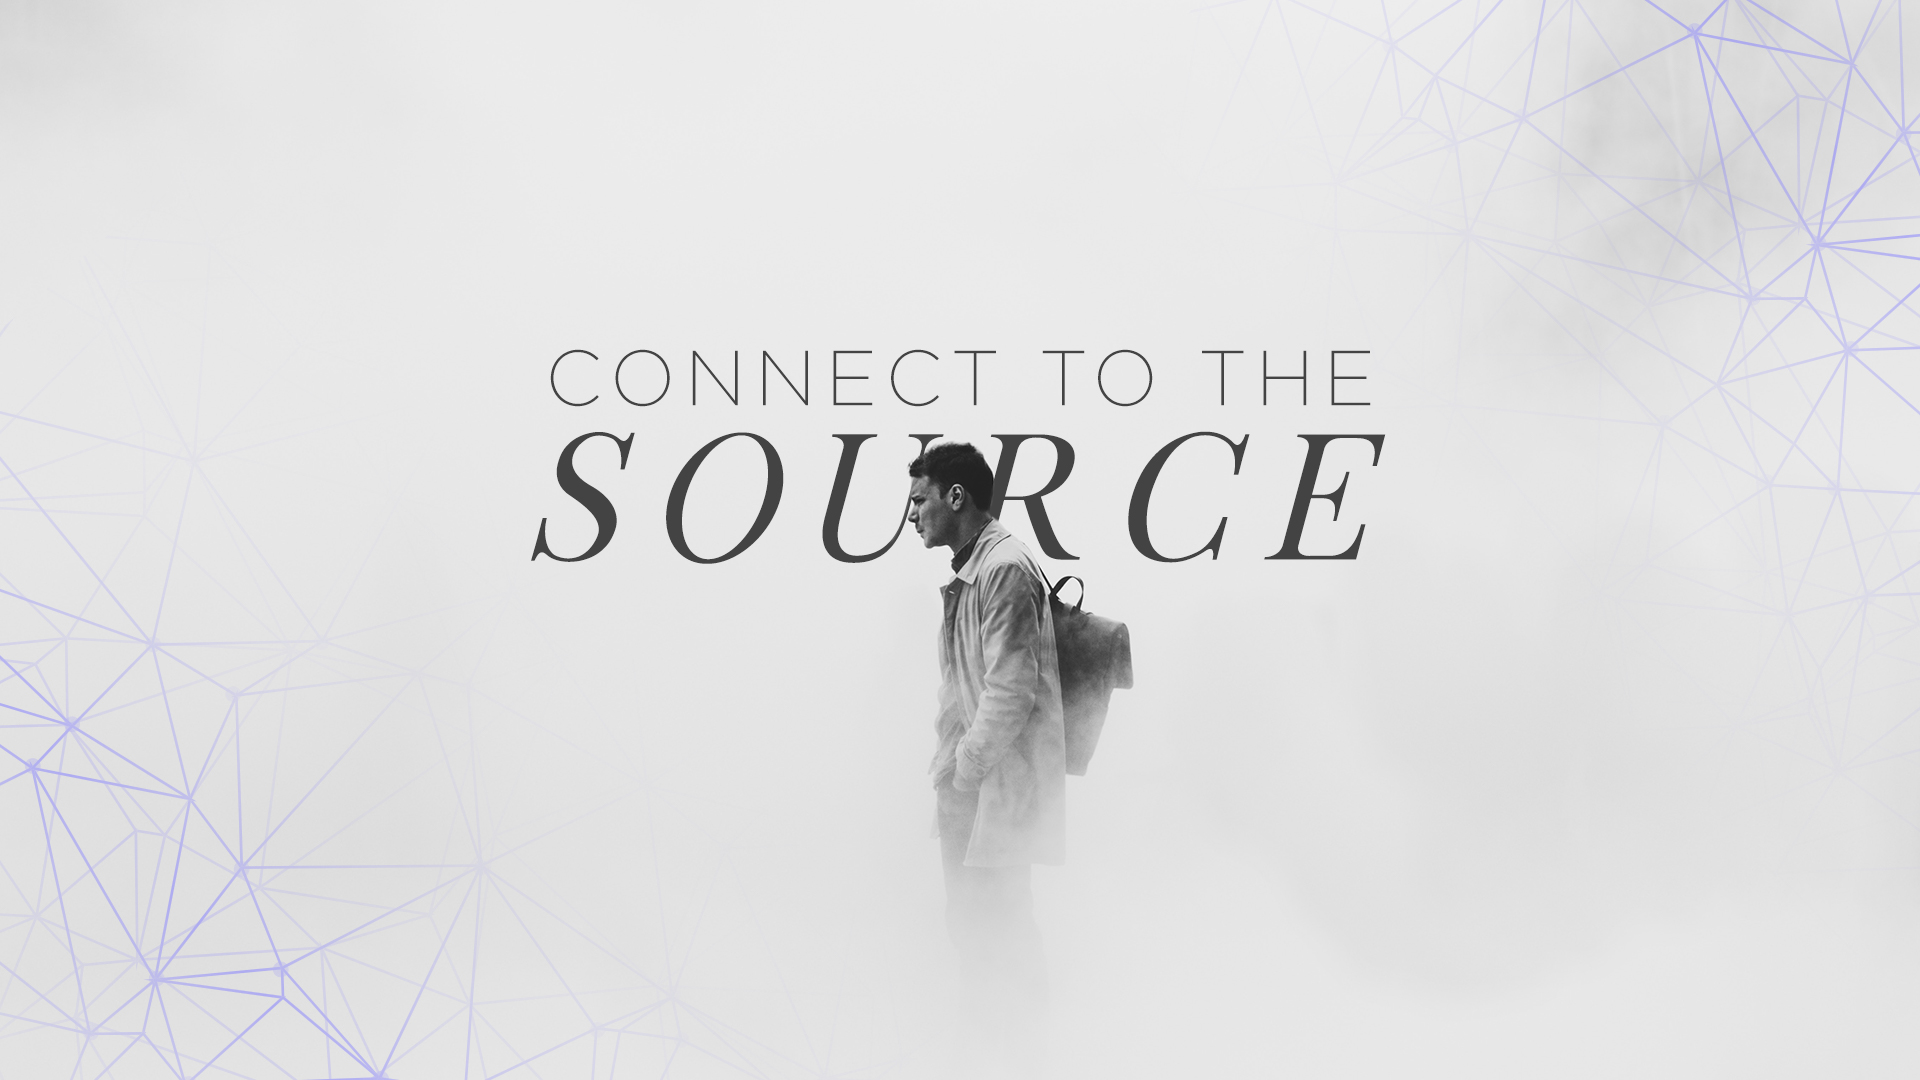 Connect To The Source